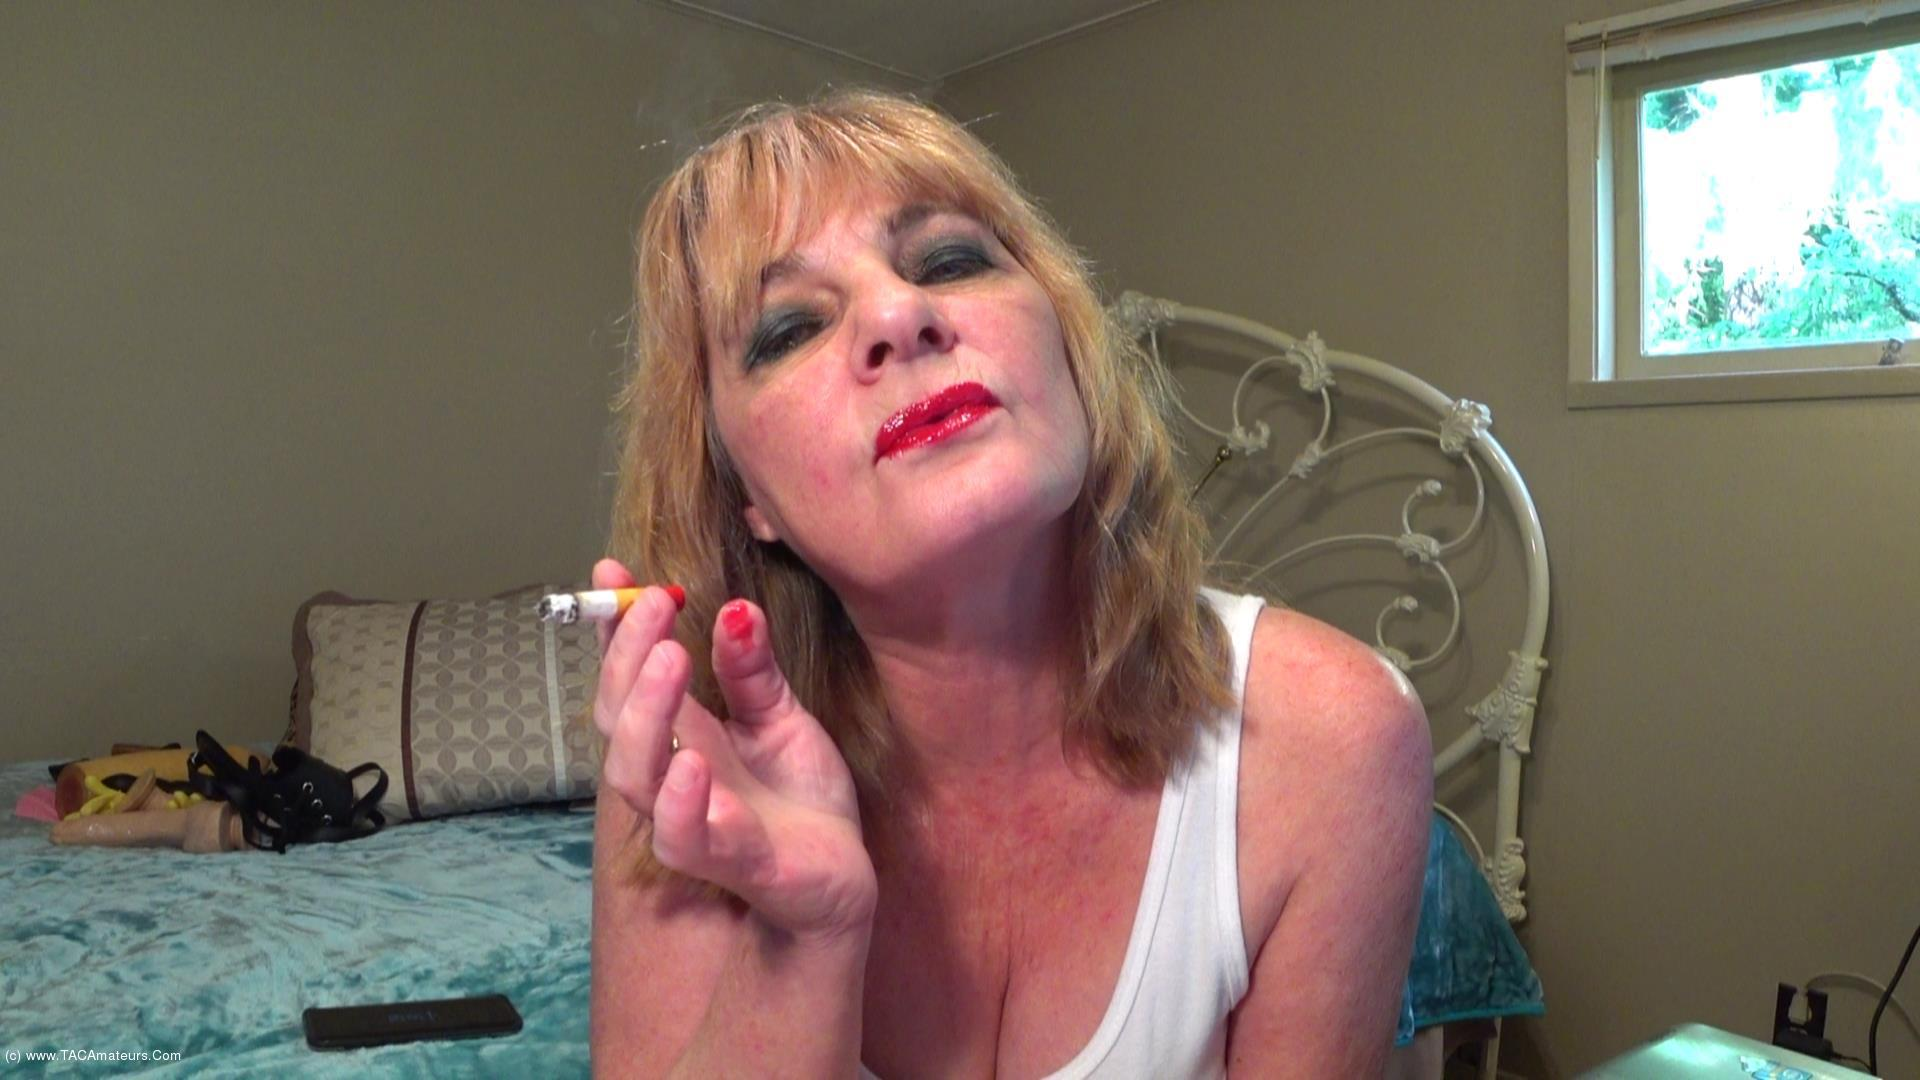 CougarBabeJolee - Smoking Shiny Red Lippy scene 3